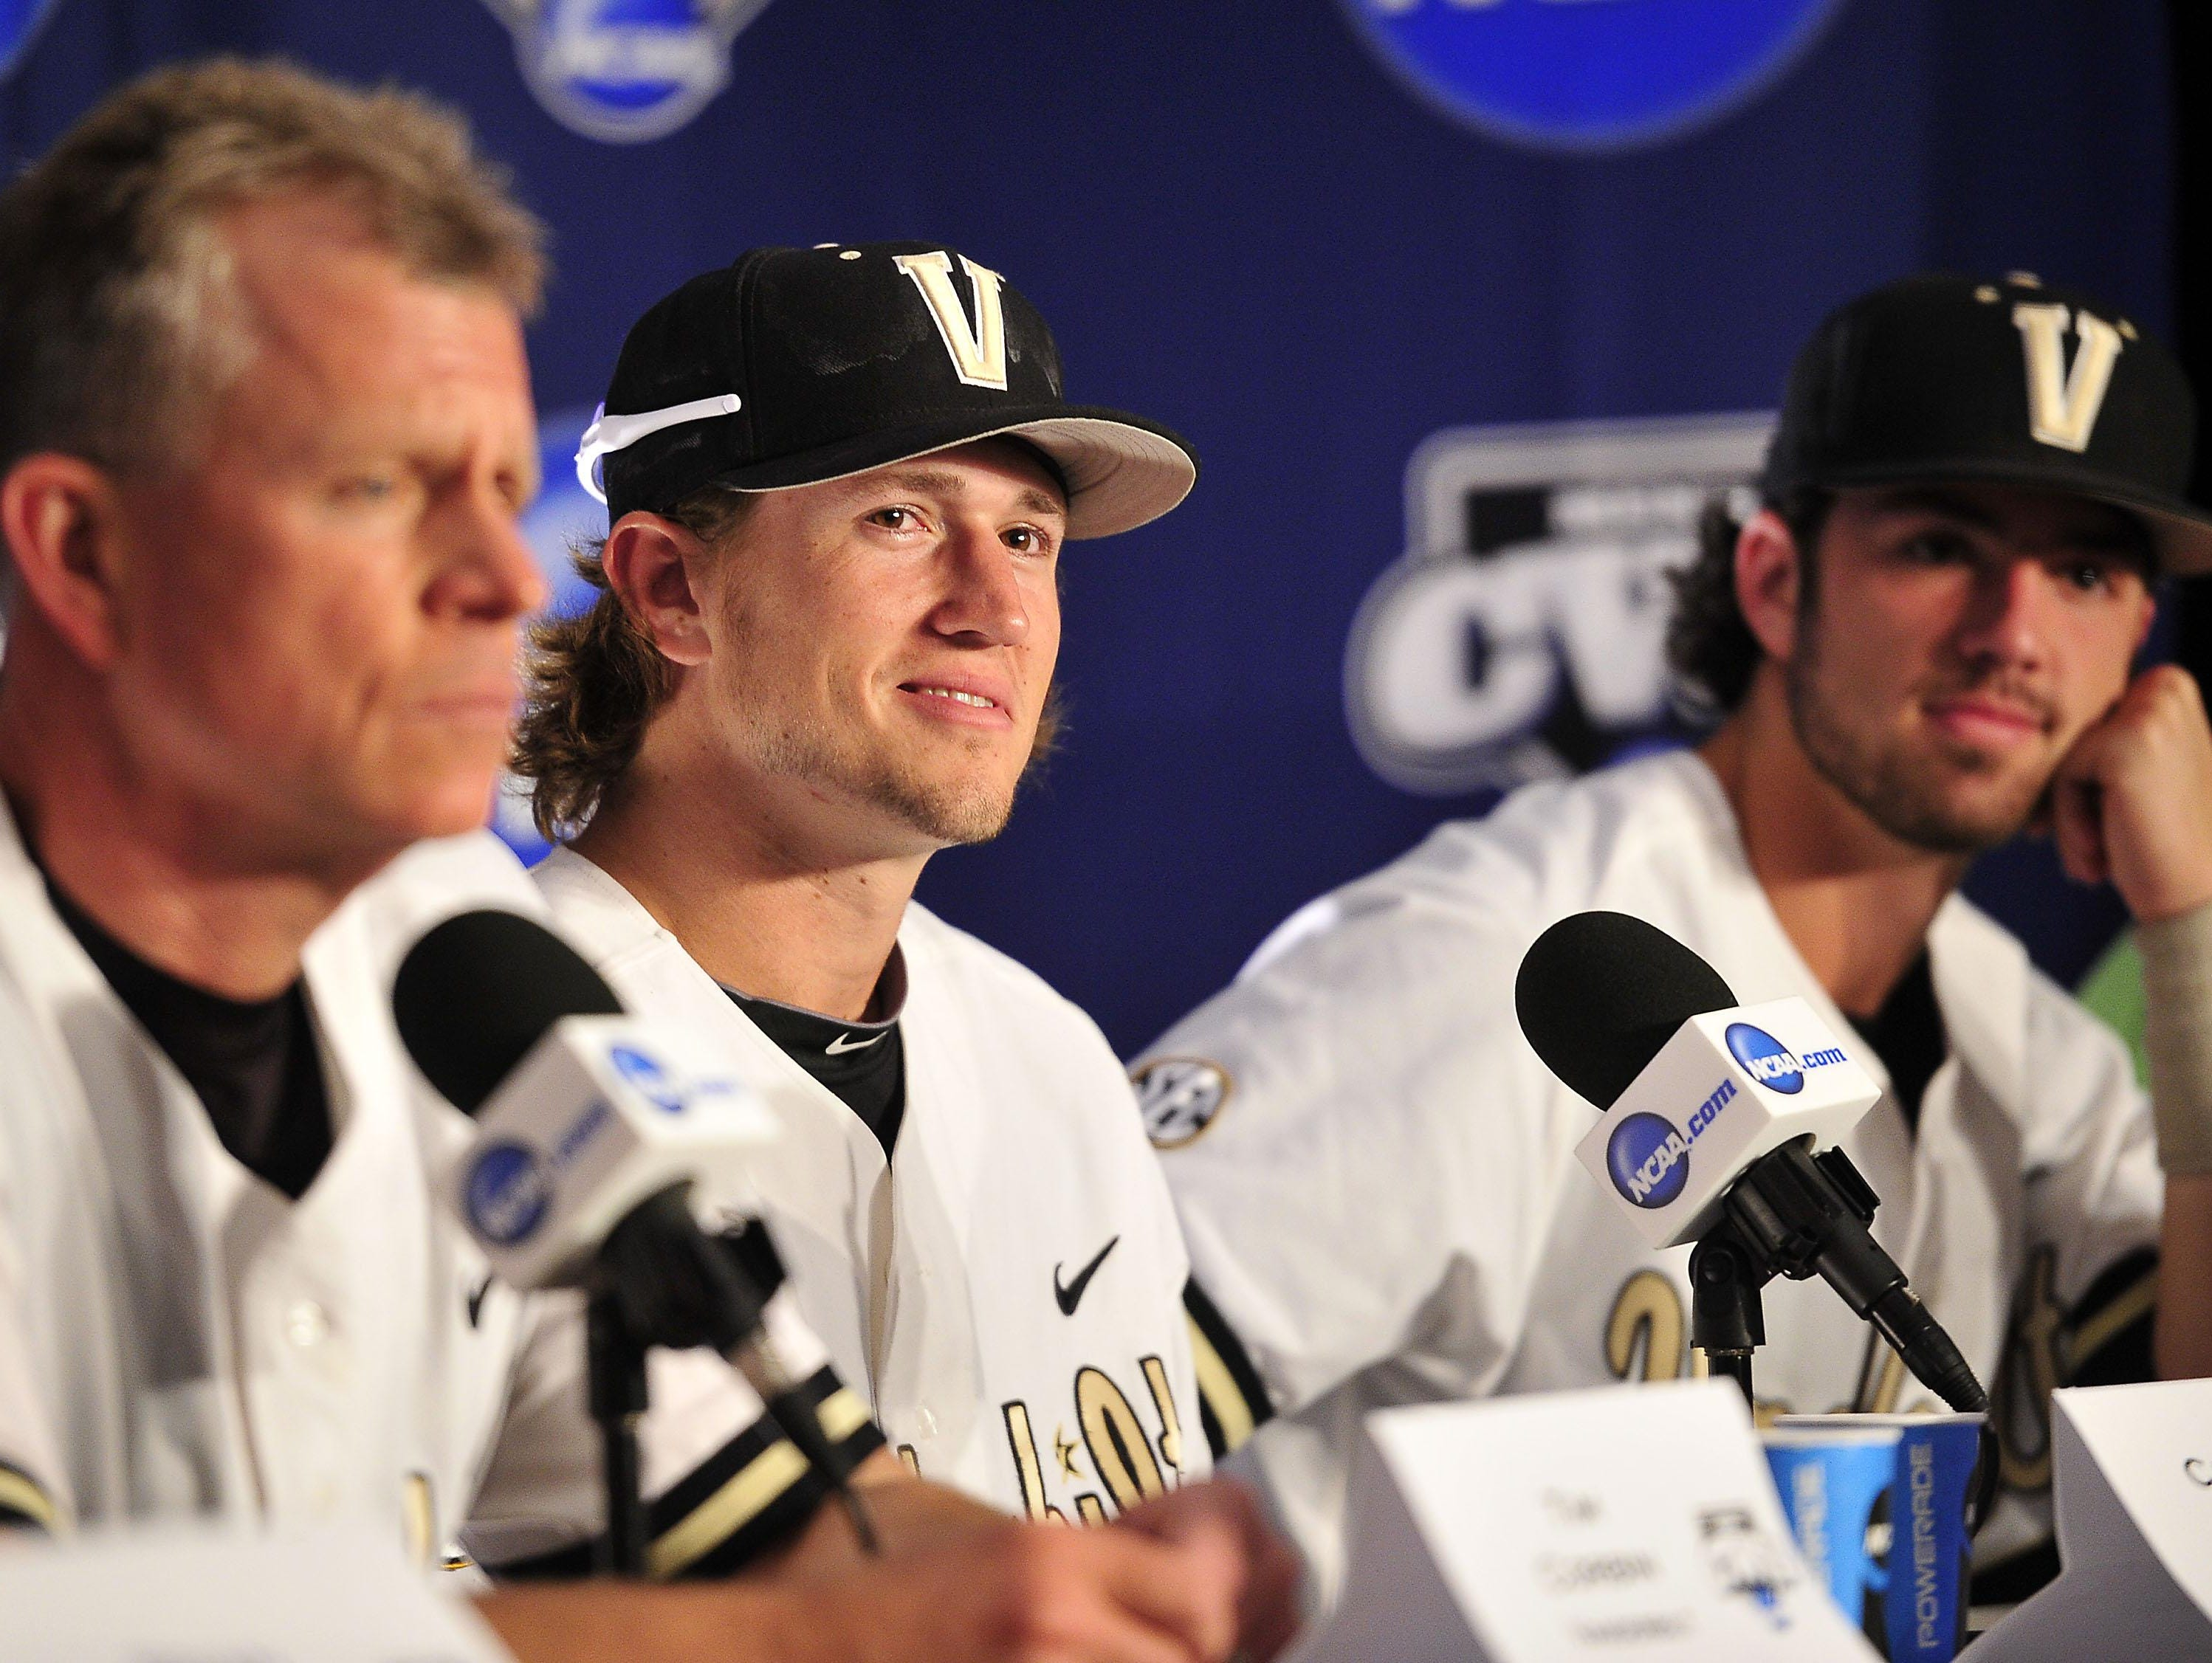 Vanderbilt coach Tim Corbin and Commodores stars Carson Fulmer, center, and Dansby Swanson await questions at a news conference Sunday at the College World Series. Swanson, the No. 1 overall pick in the pro baseball draft, and Fulmer, who was picked eighth, say they are focused on finishing their college careers, not what lies ahead in pro ball.